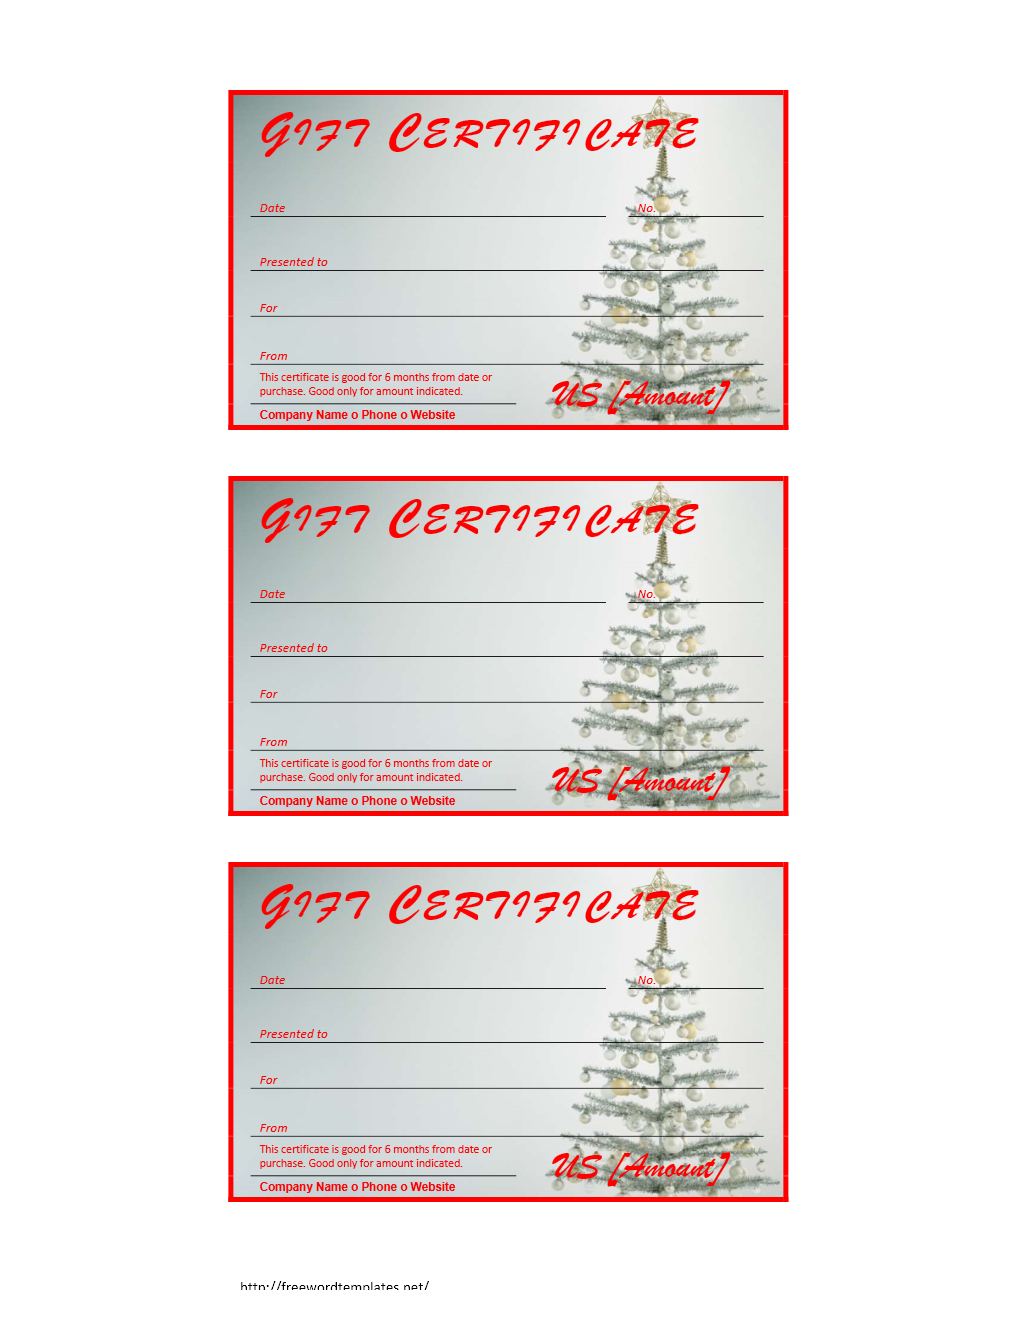 Free Gift Certificate Archives   Freewordtemplates - Free Printable Christmas Gift Voucher Templates